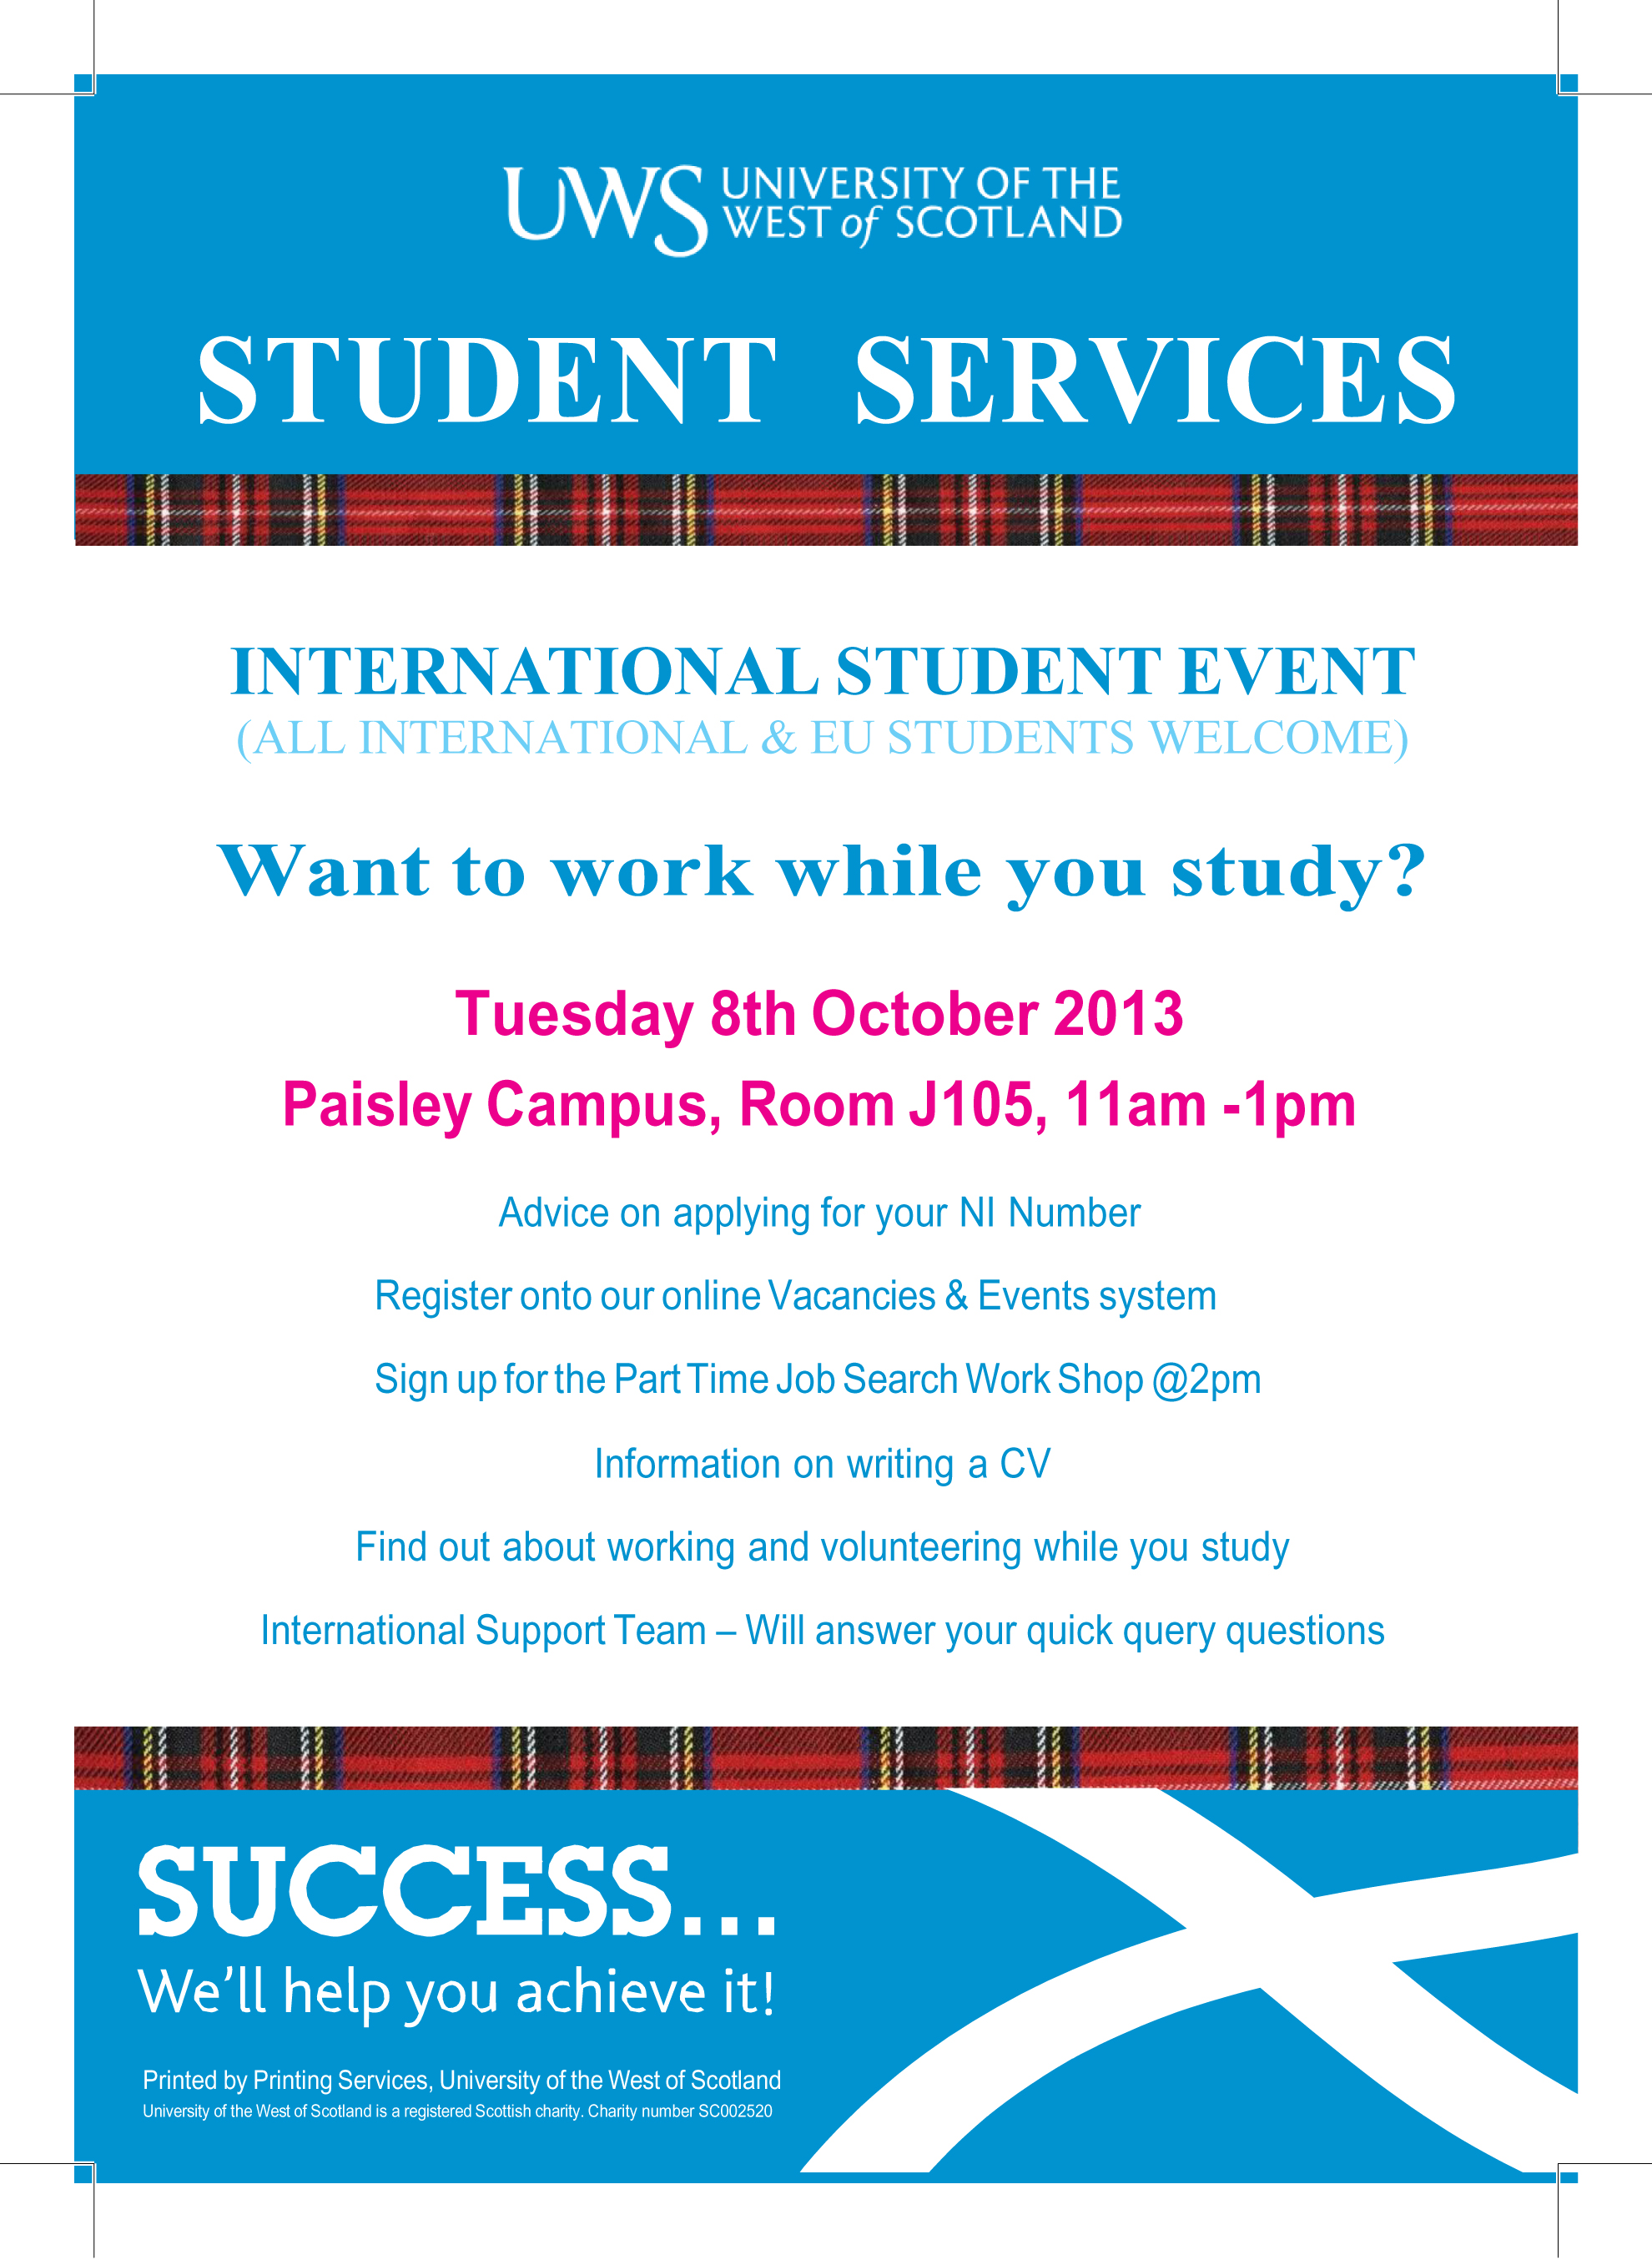 Want To Work While You Study For International Students